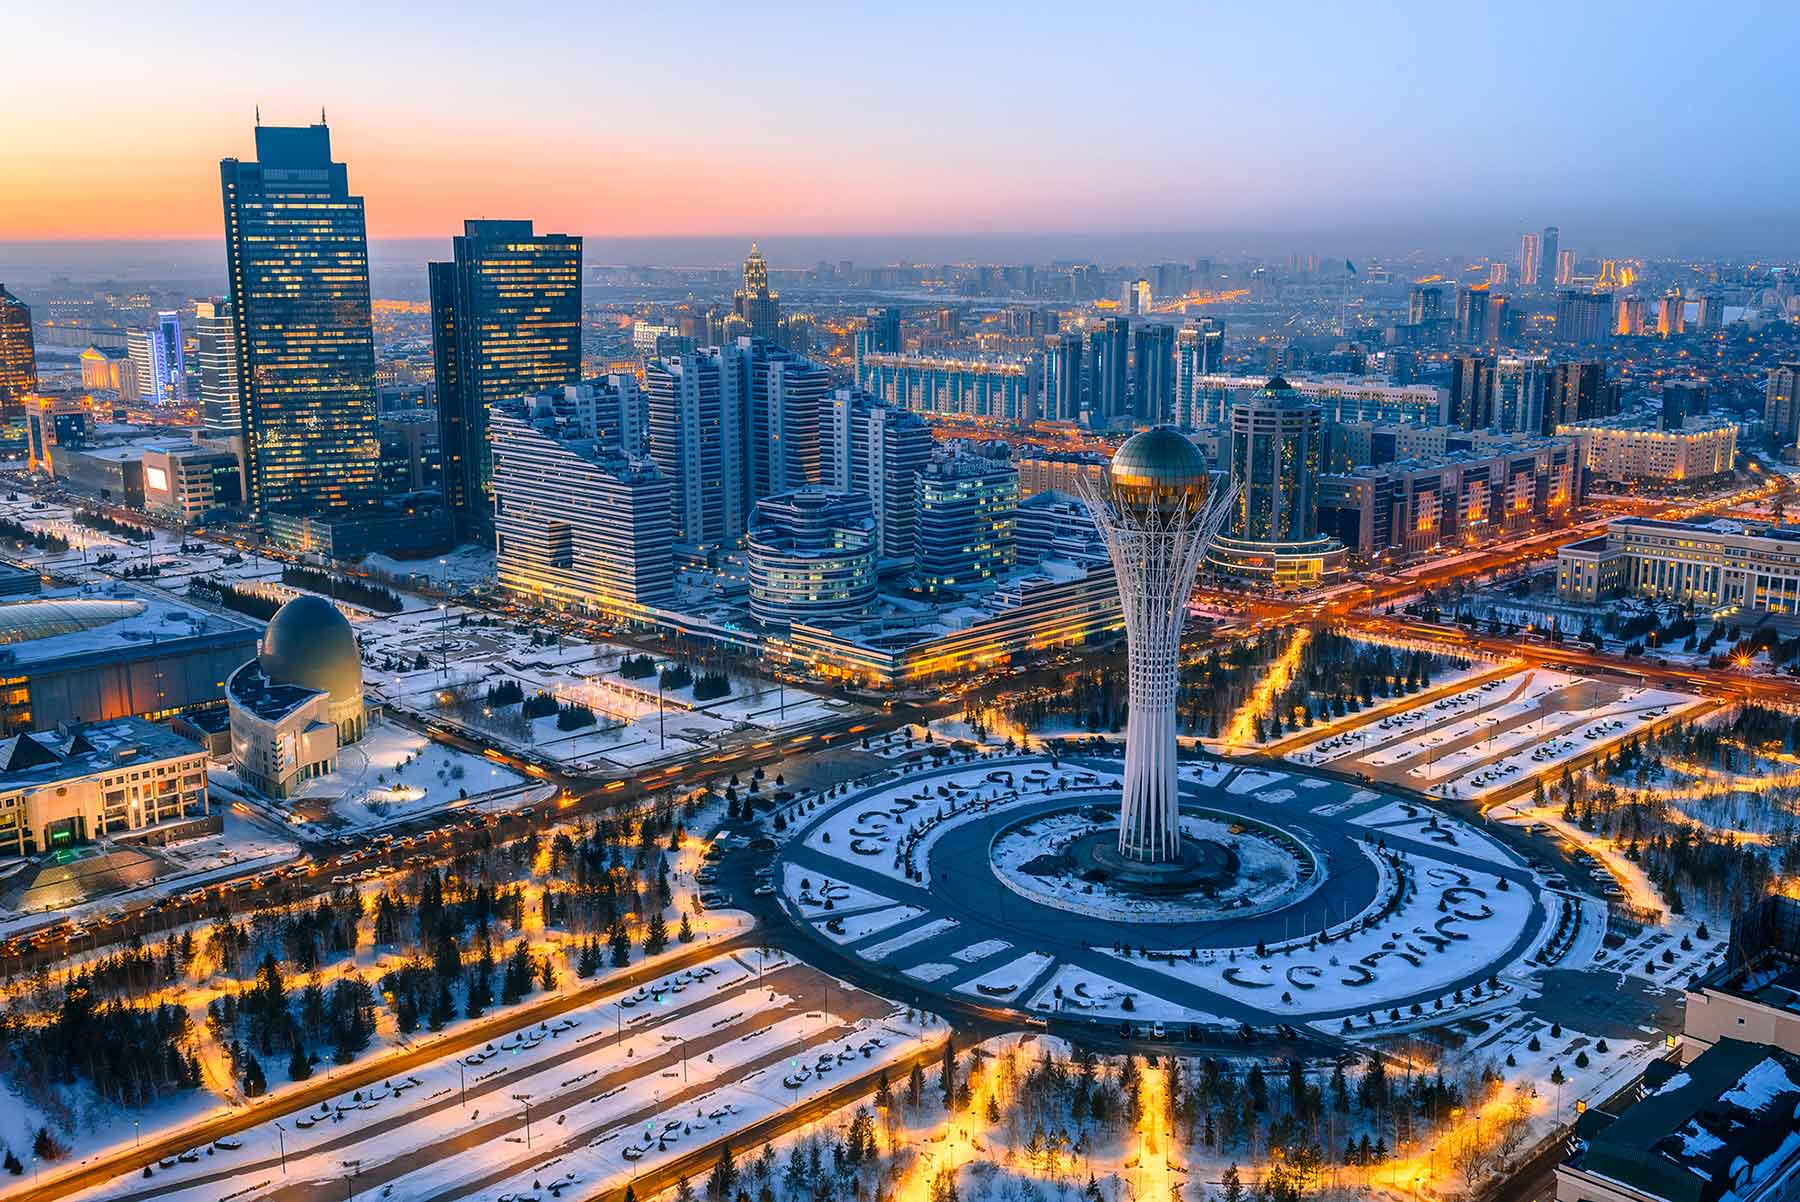 Kazakhstan International Tourism Exhibition in Astana